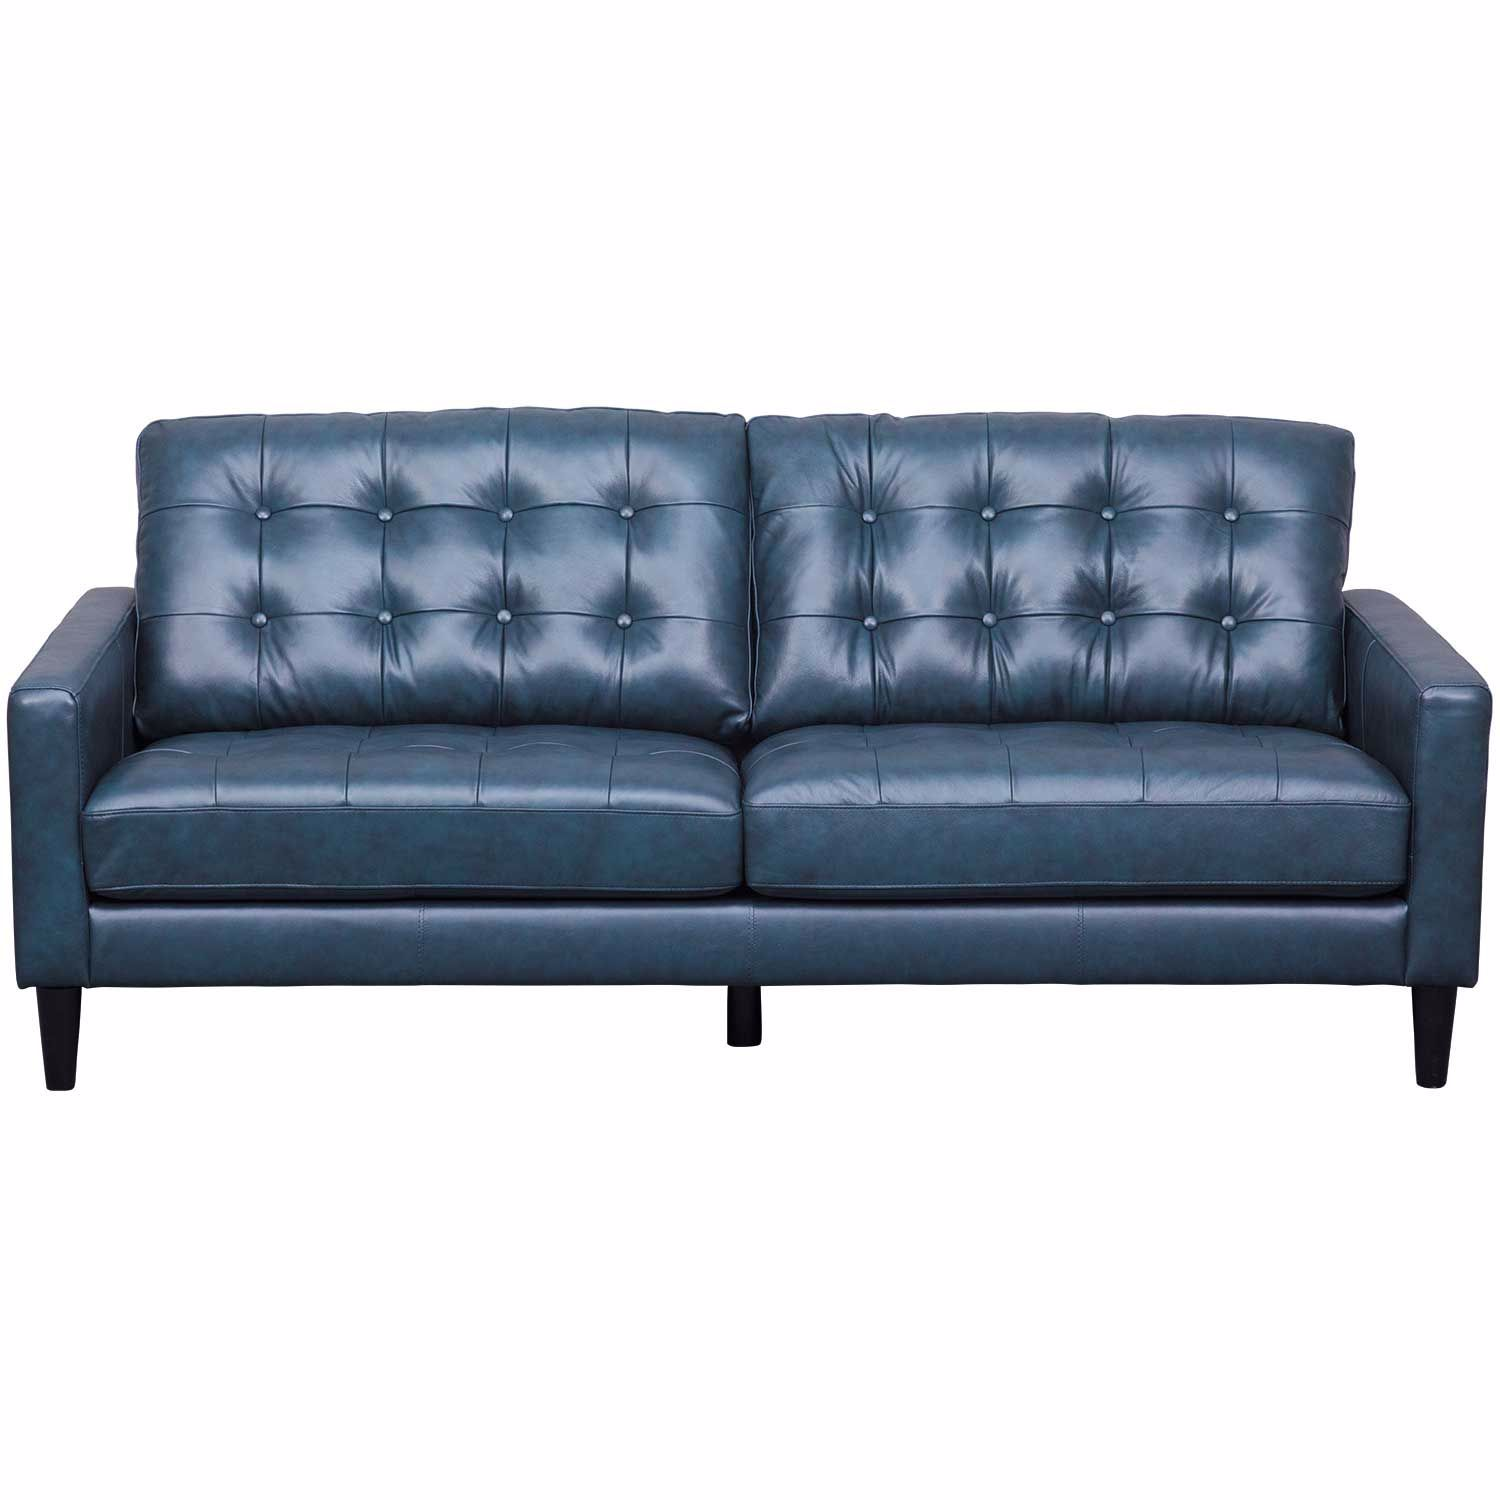 Leather Couch: Ashton Navy Leather Sofa